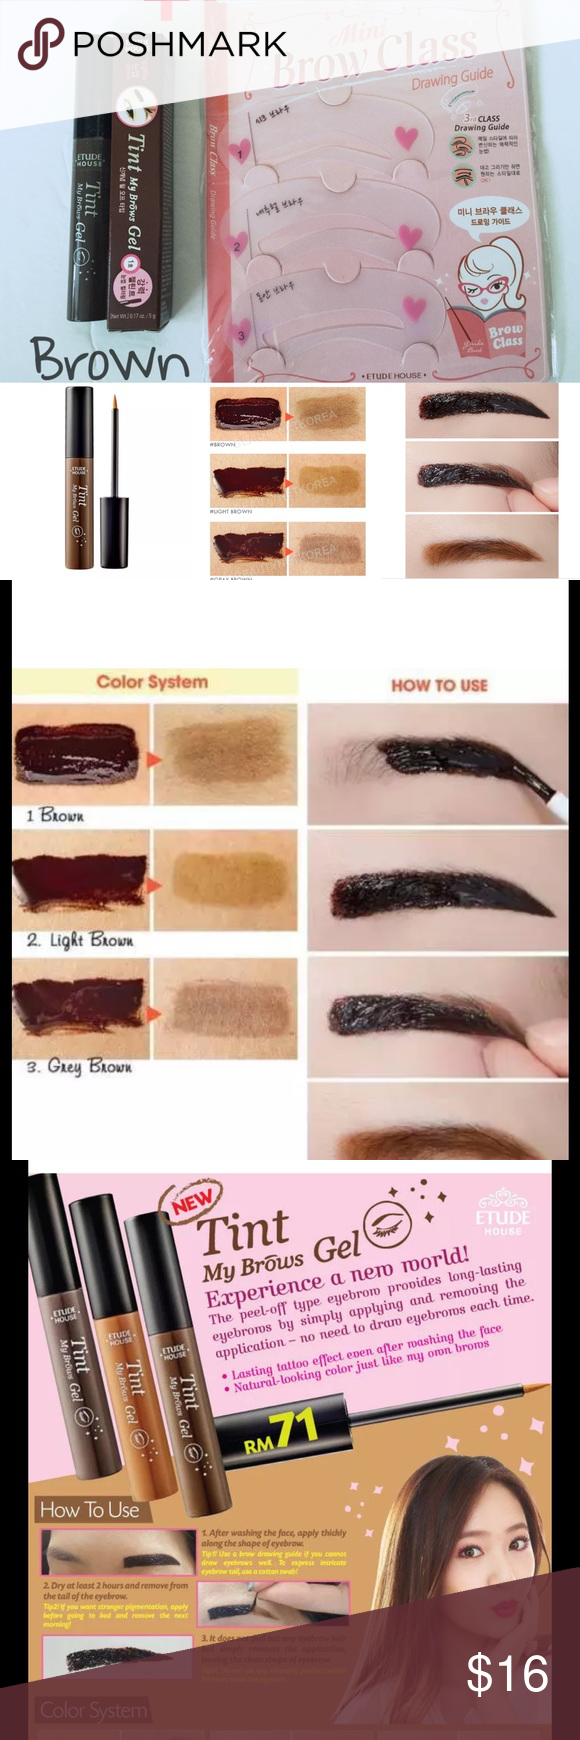 Etude House Tint My Brows Gel Stencil Kit Color Brown 5g New And Drawing Eyebrow Buy 1 Get Sealed